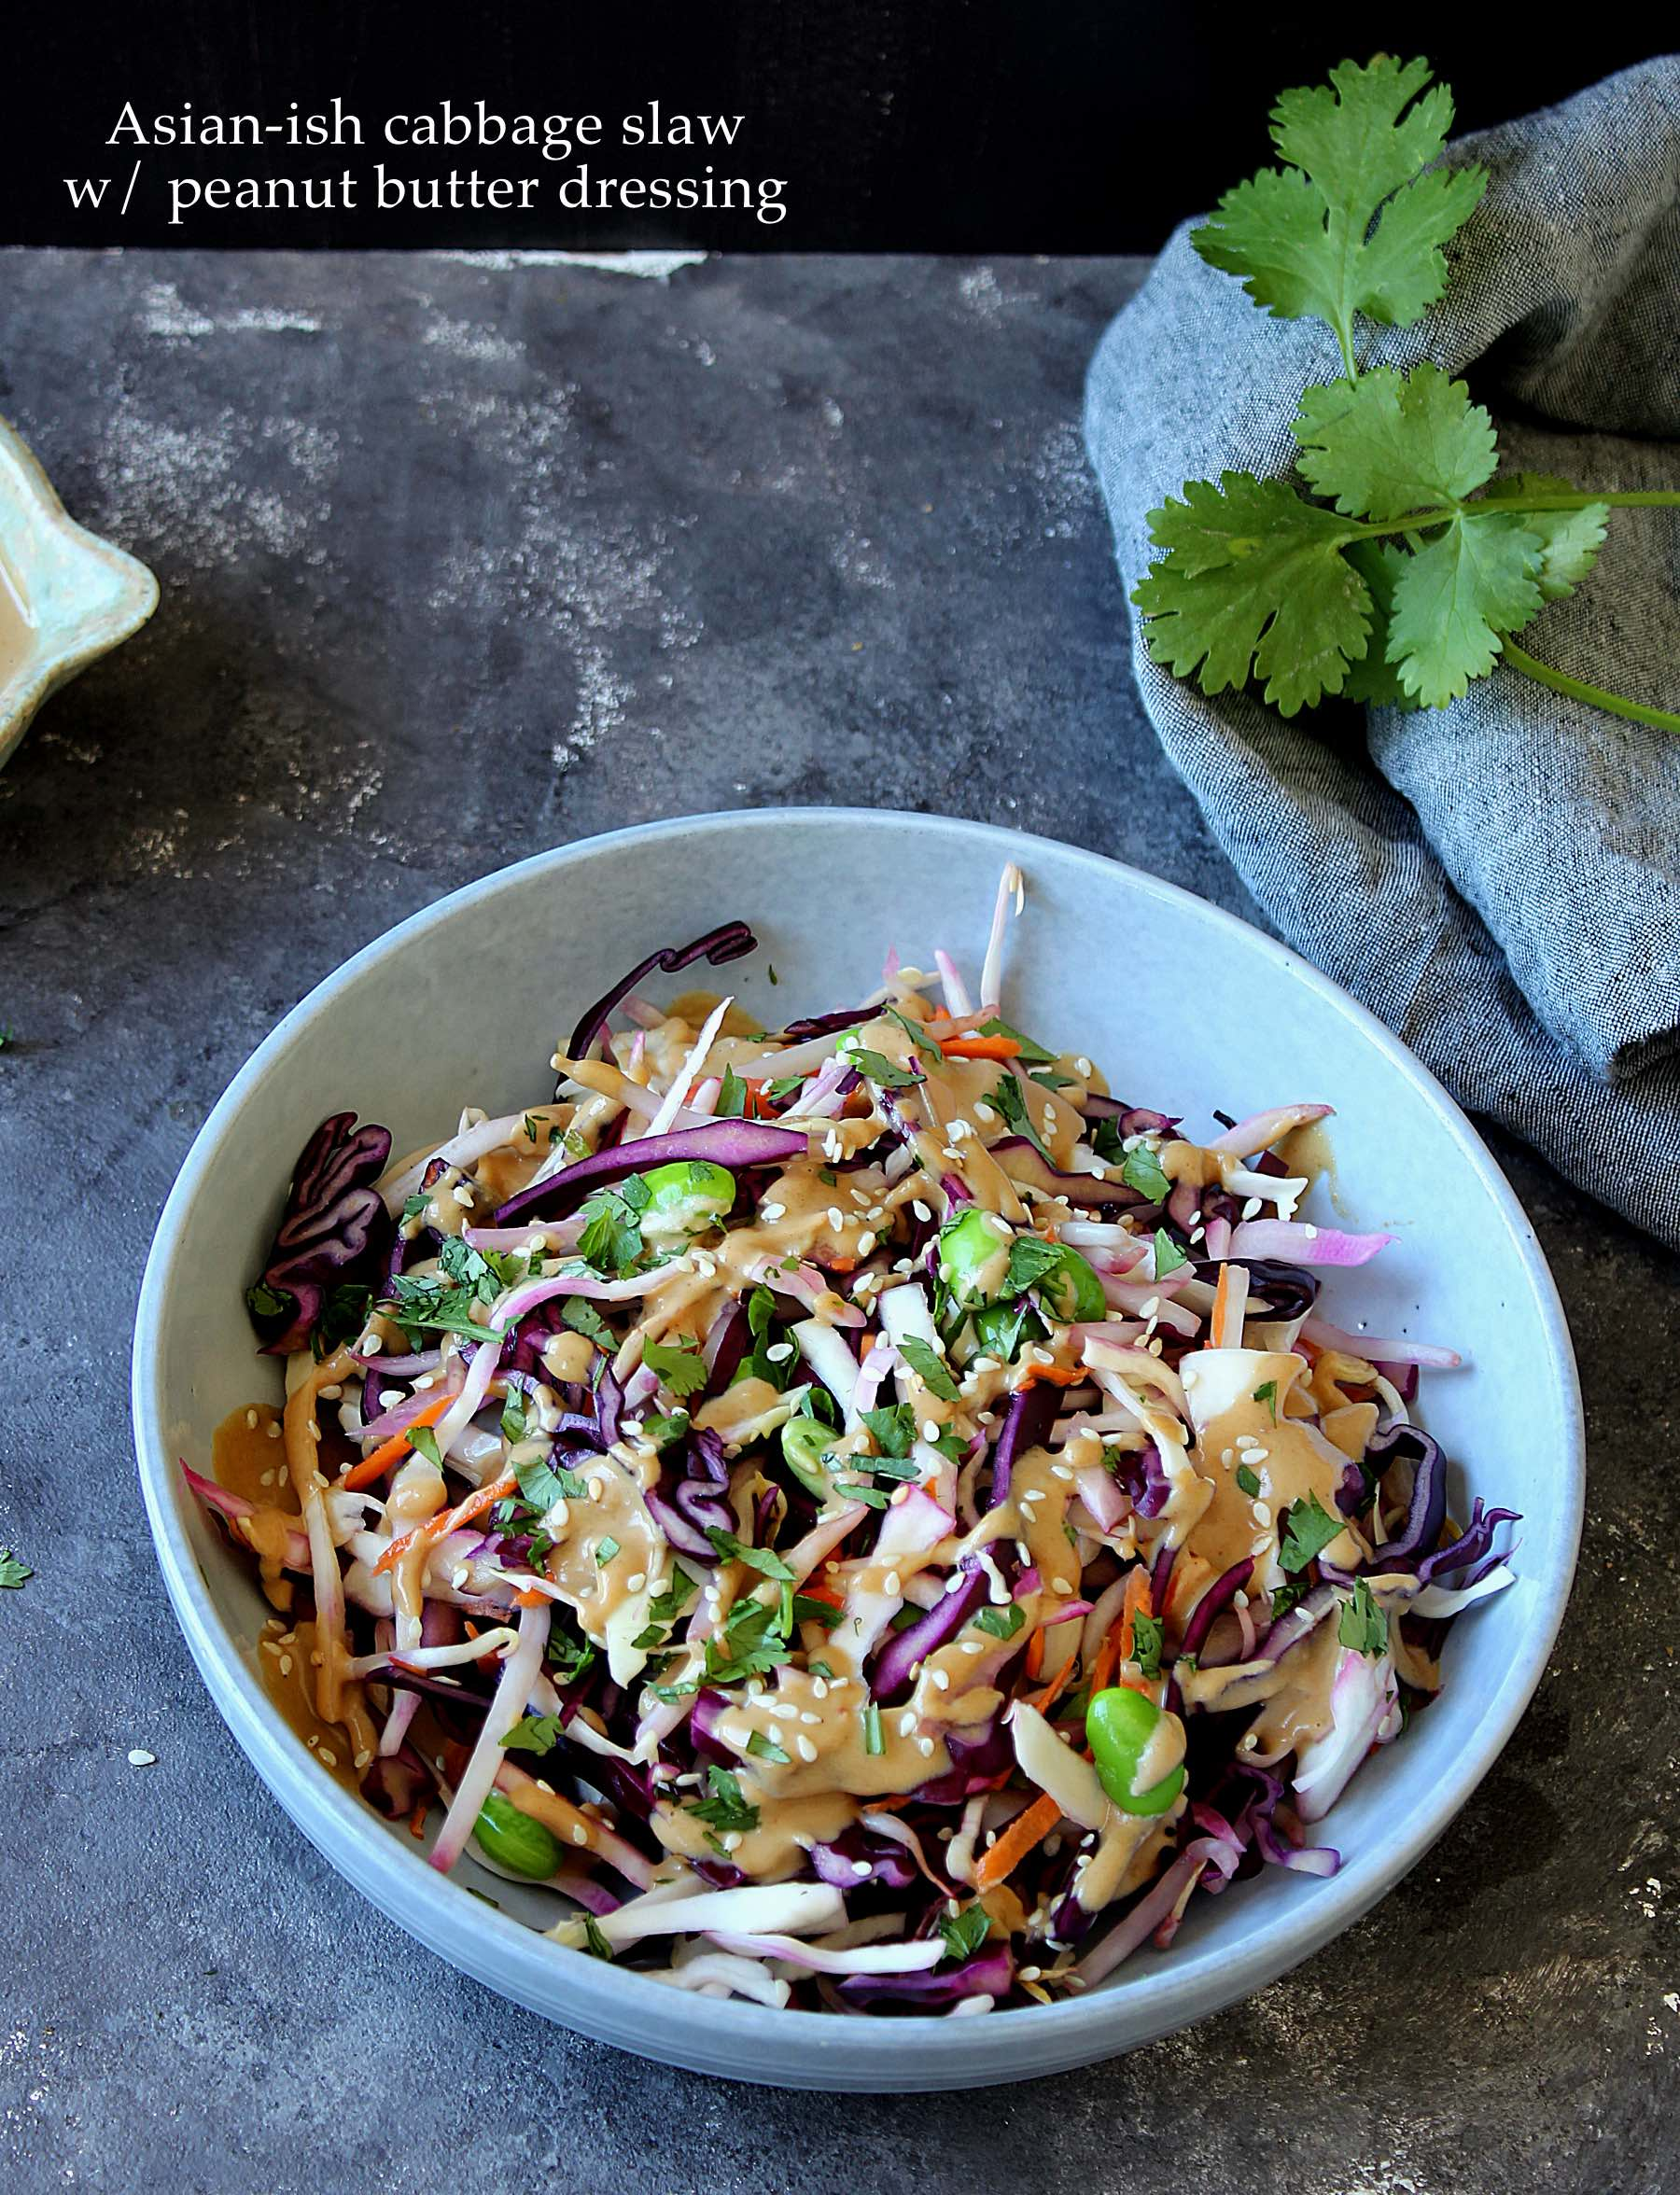 Colorful asian inspired cabbage salad with peanut butter dressing